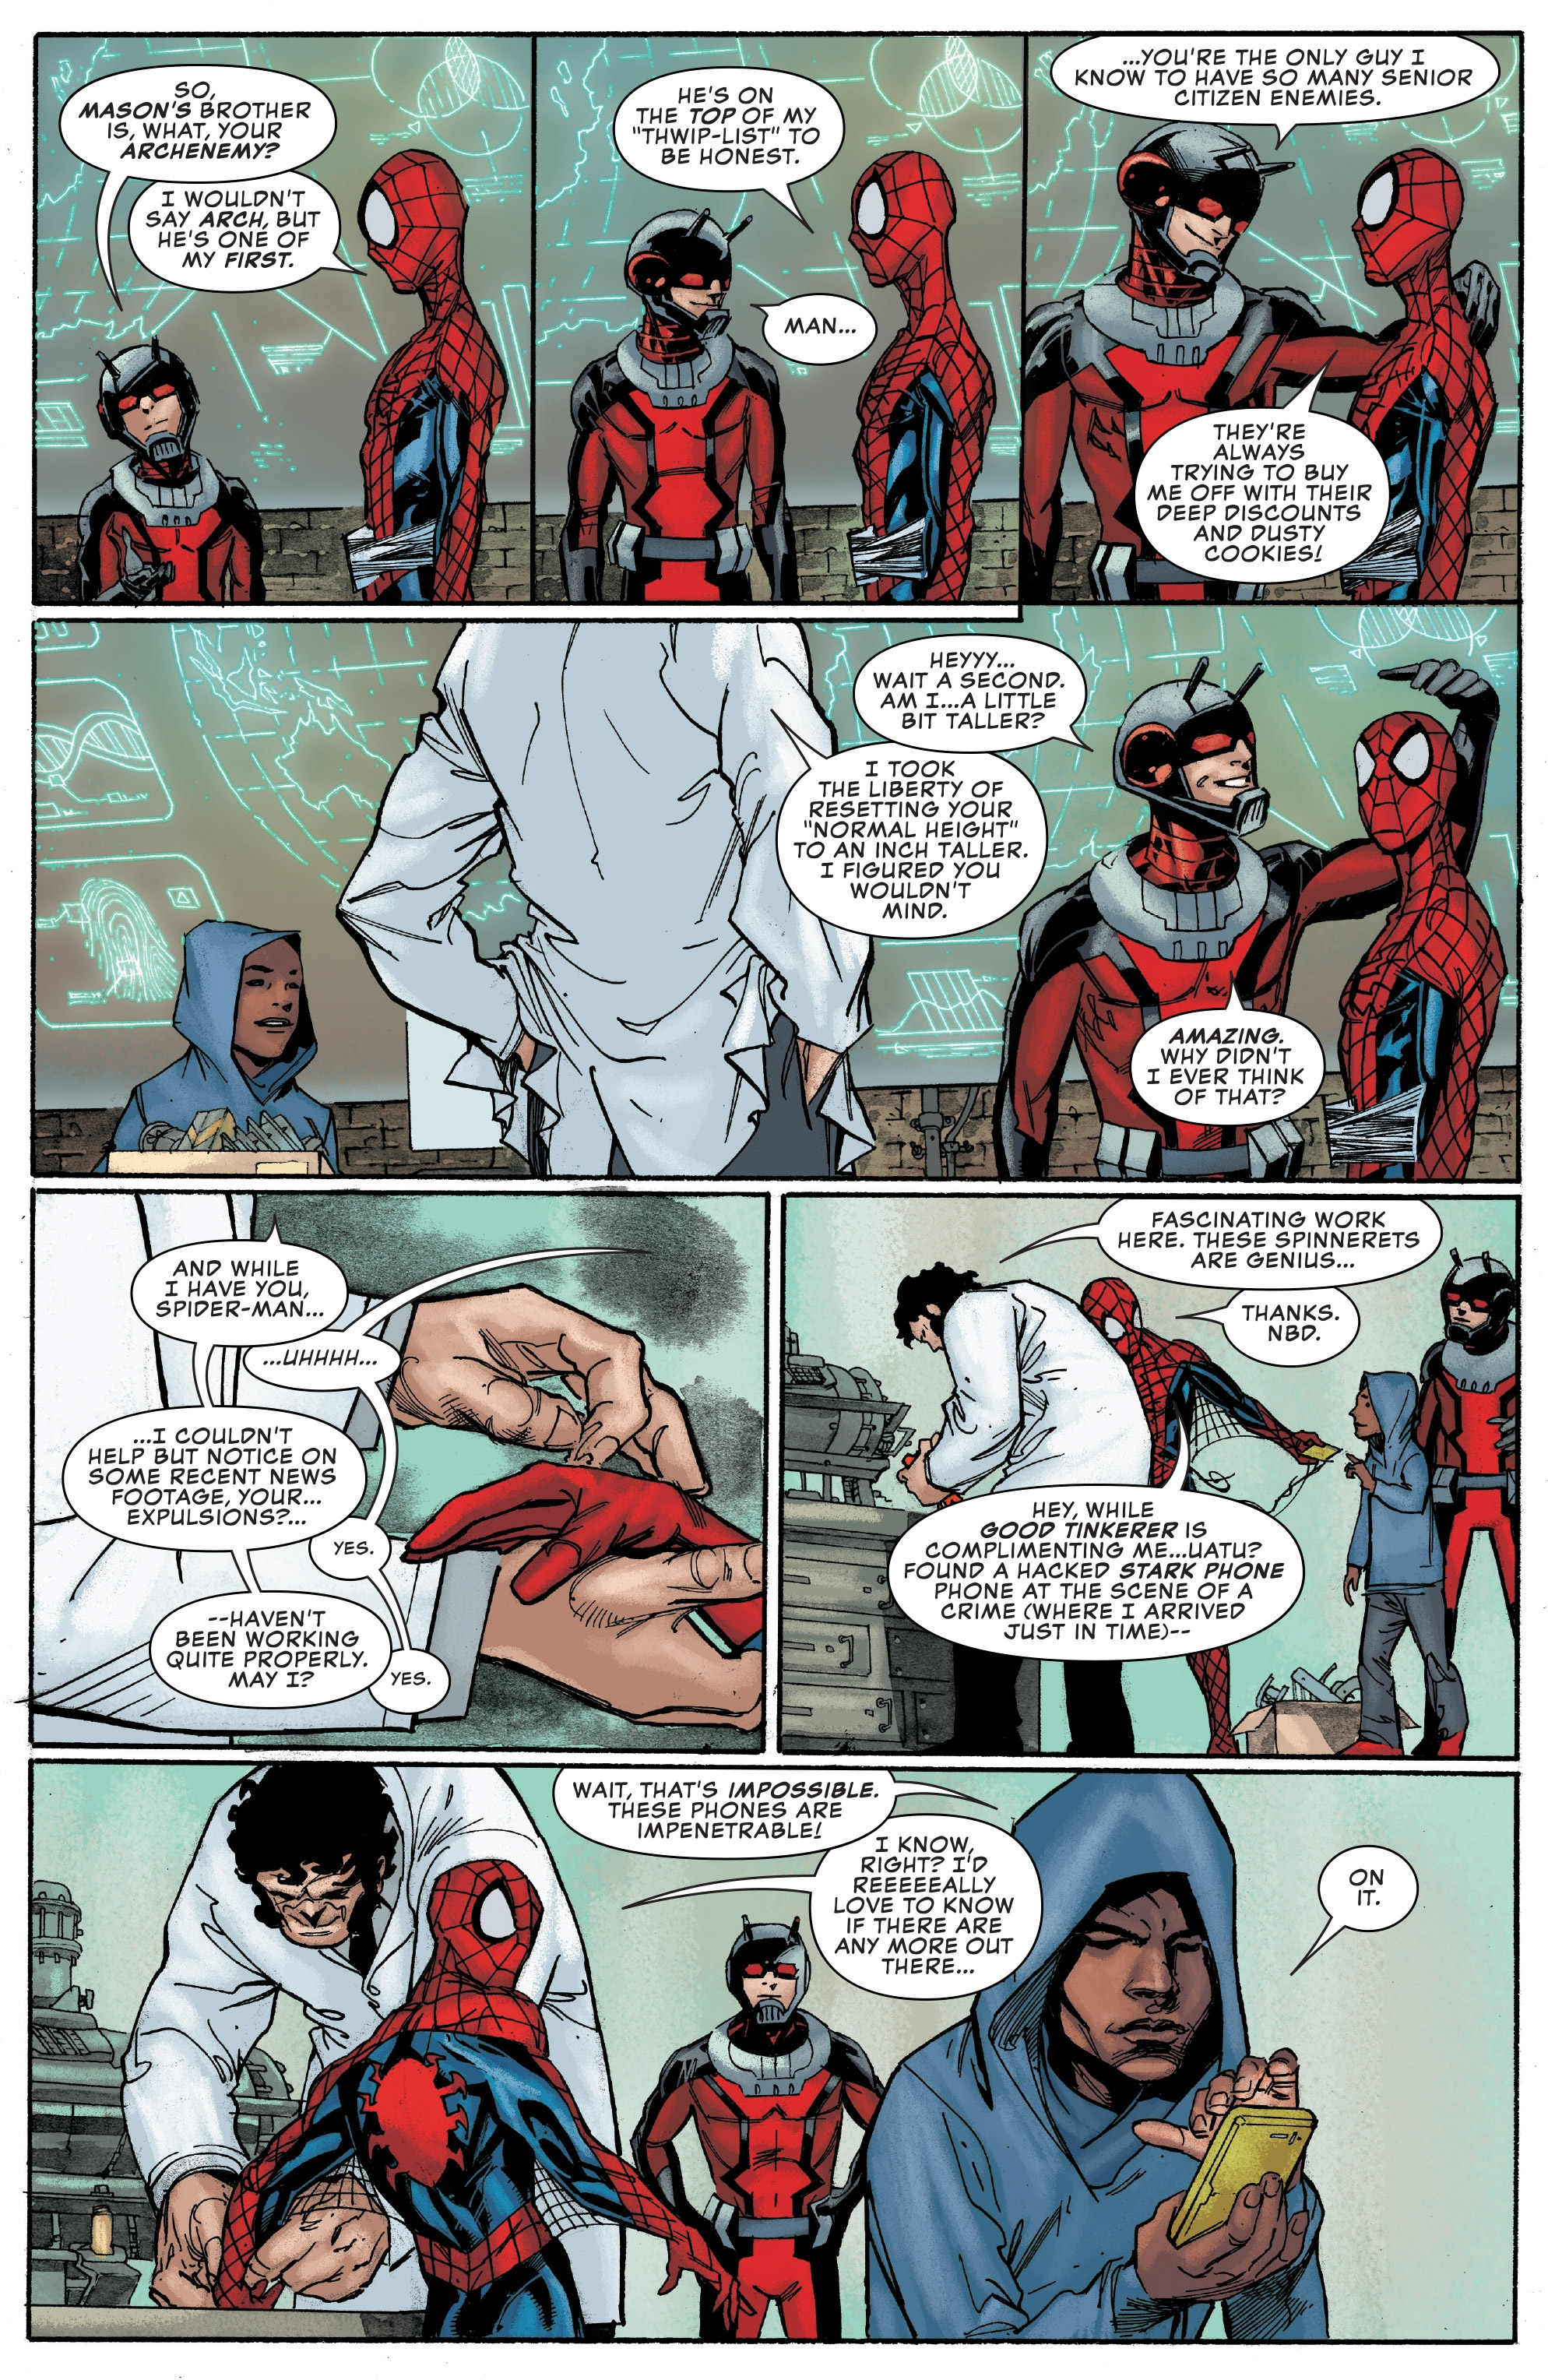 Read online Peter Parker: The Spectacular Spider-Man comic -  Issue #1 - 11